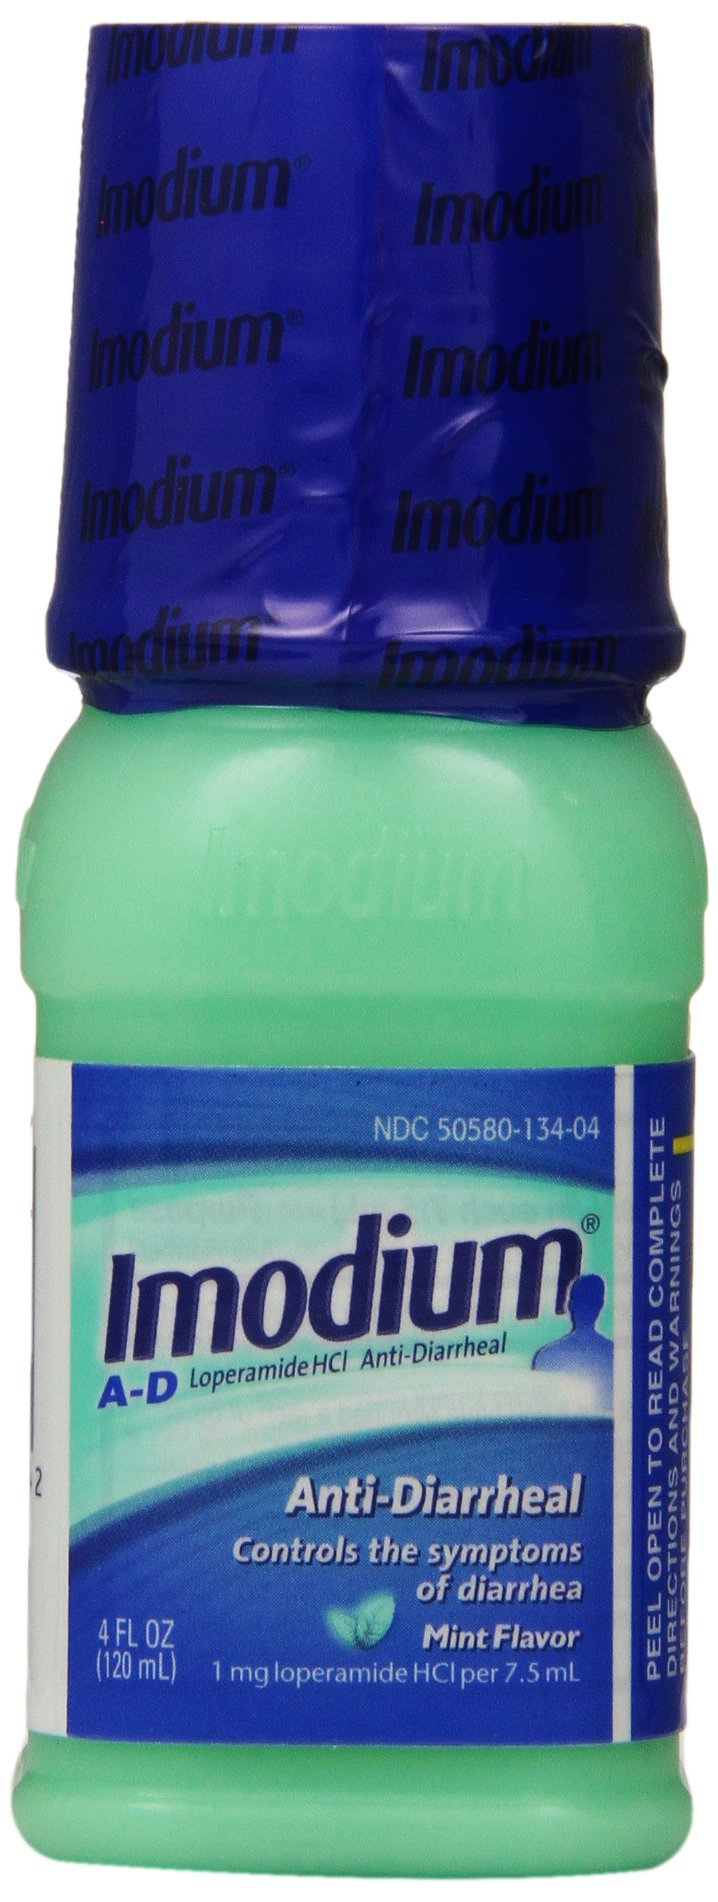 Imodium A-D Anti-Diarrheal Liquid, Mint Flavor, 4 Fluid Ounce (Pack of 36) by Imodium